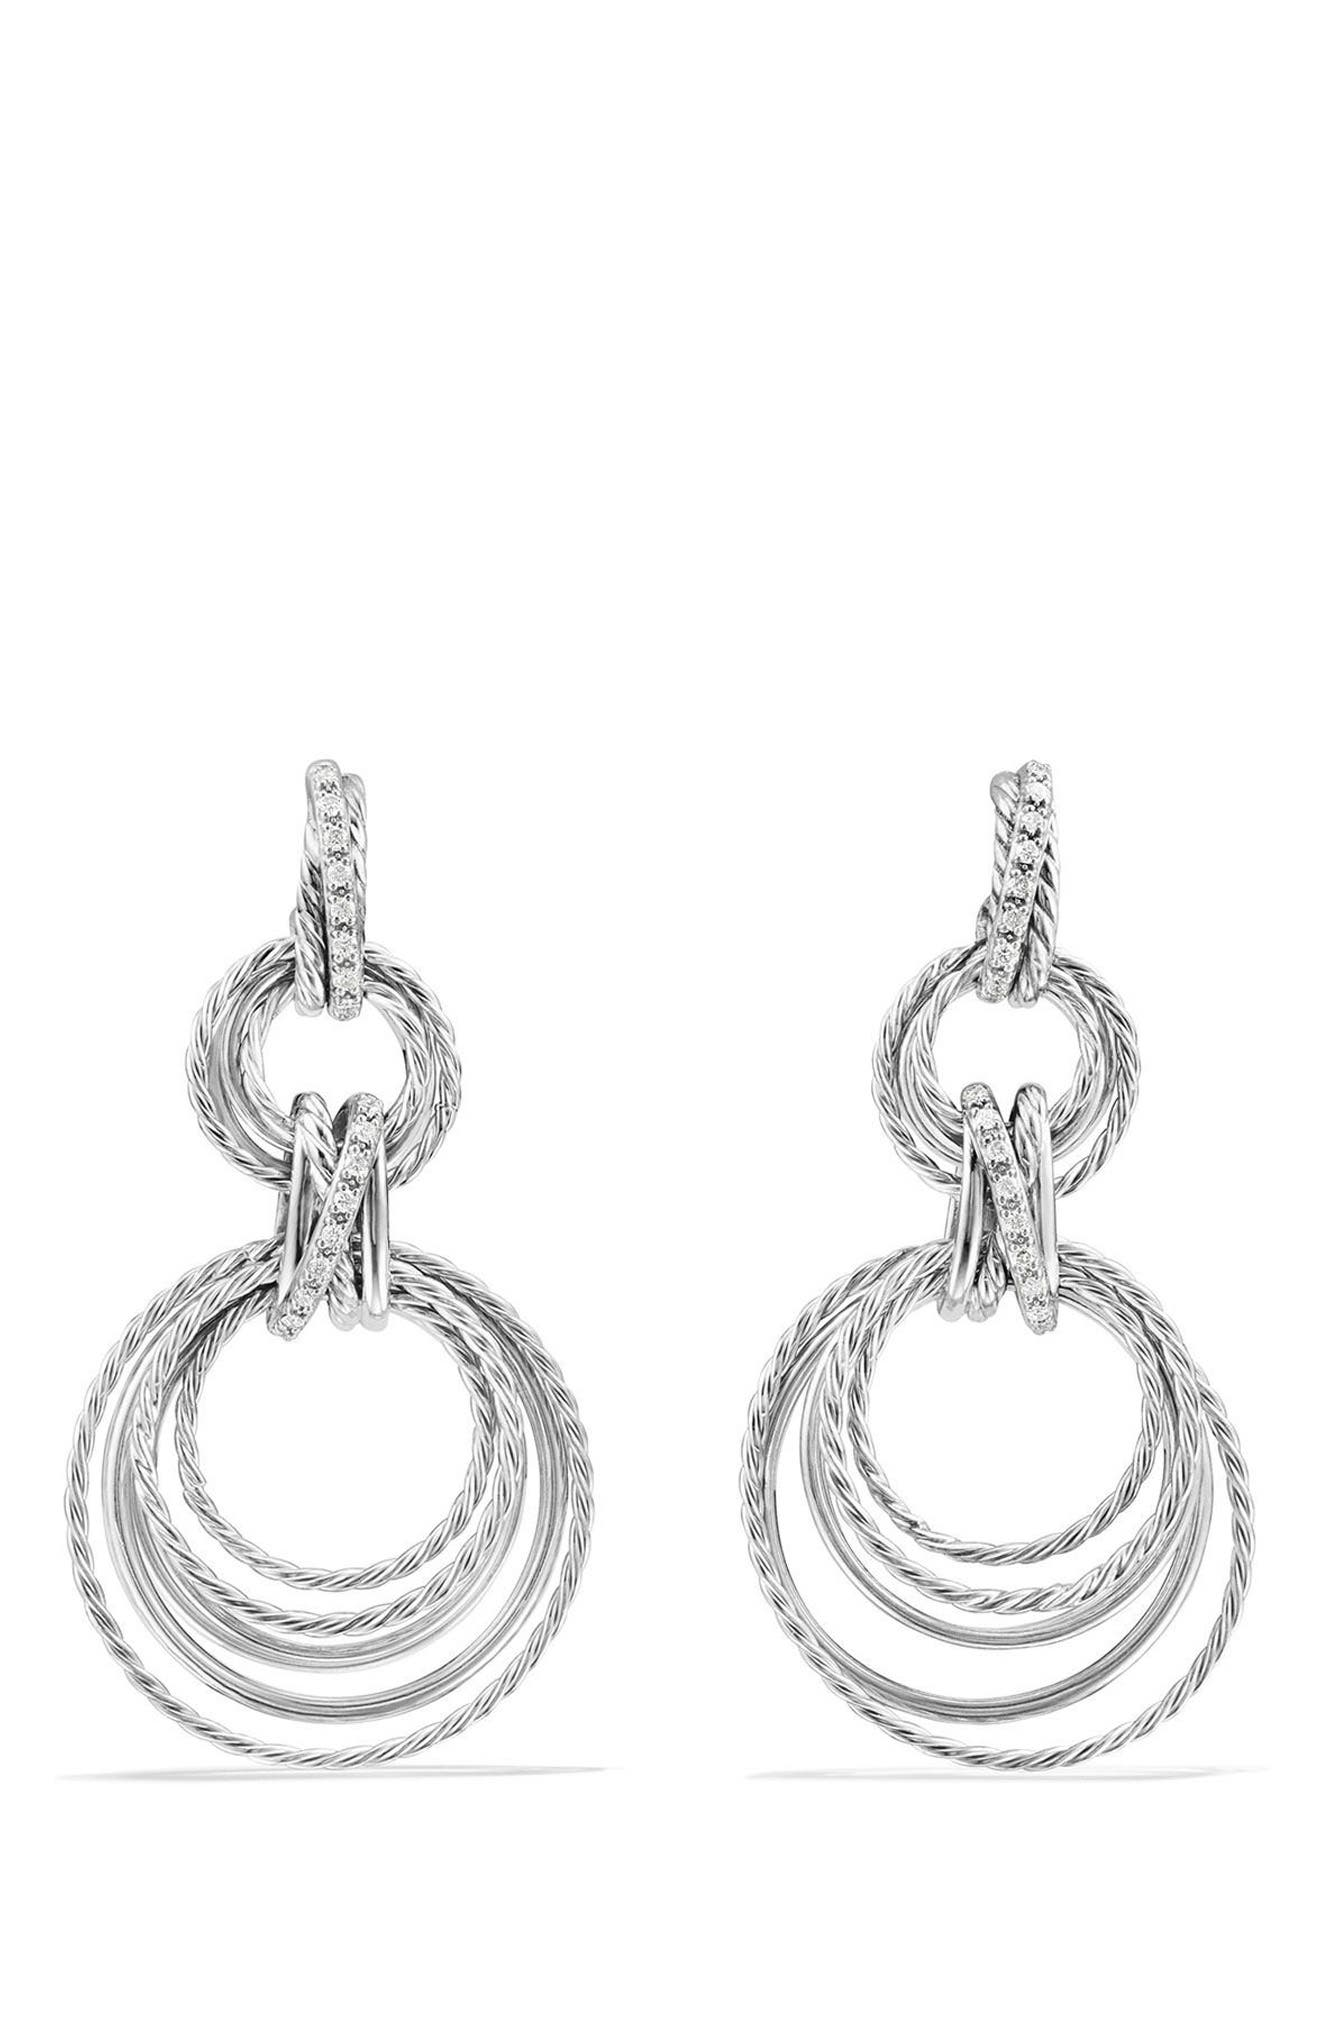 Crossover Double Drop Earrings with Diamonds,                             Main thumbnail 1, color,                             SILVER